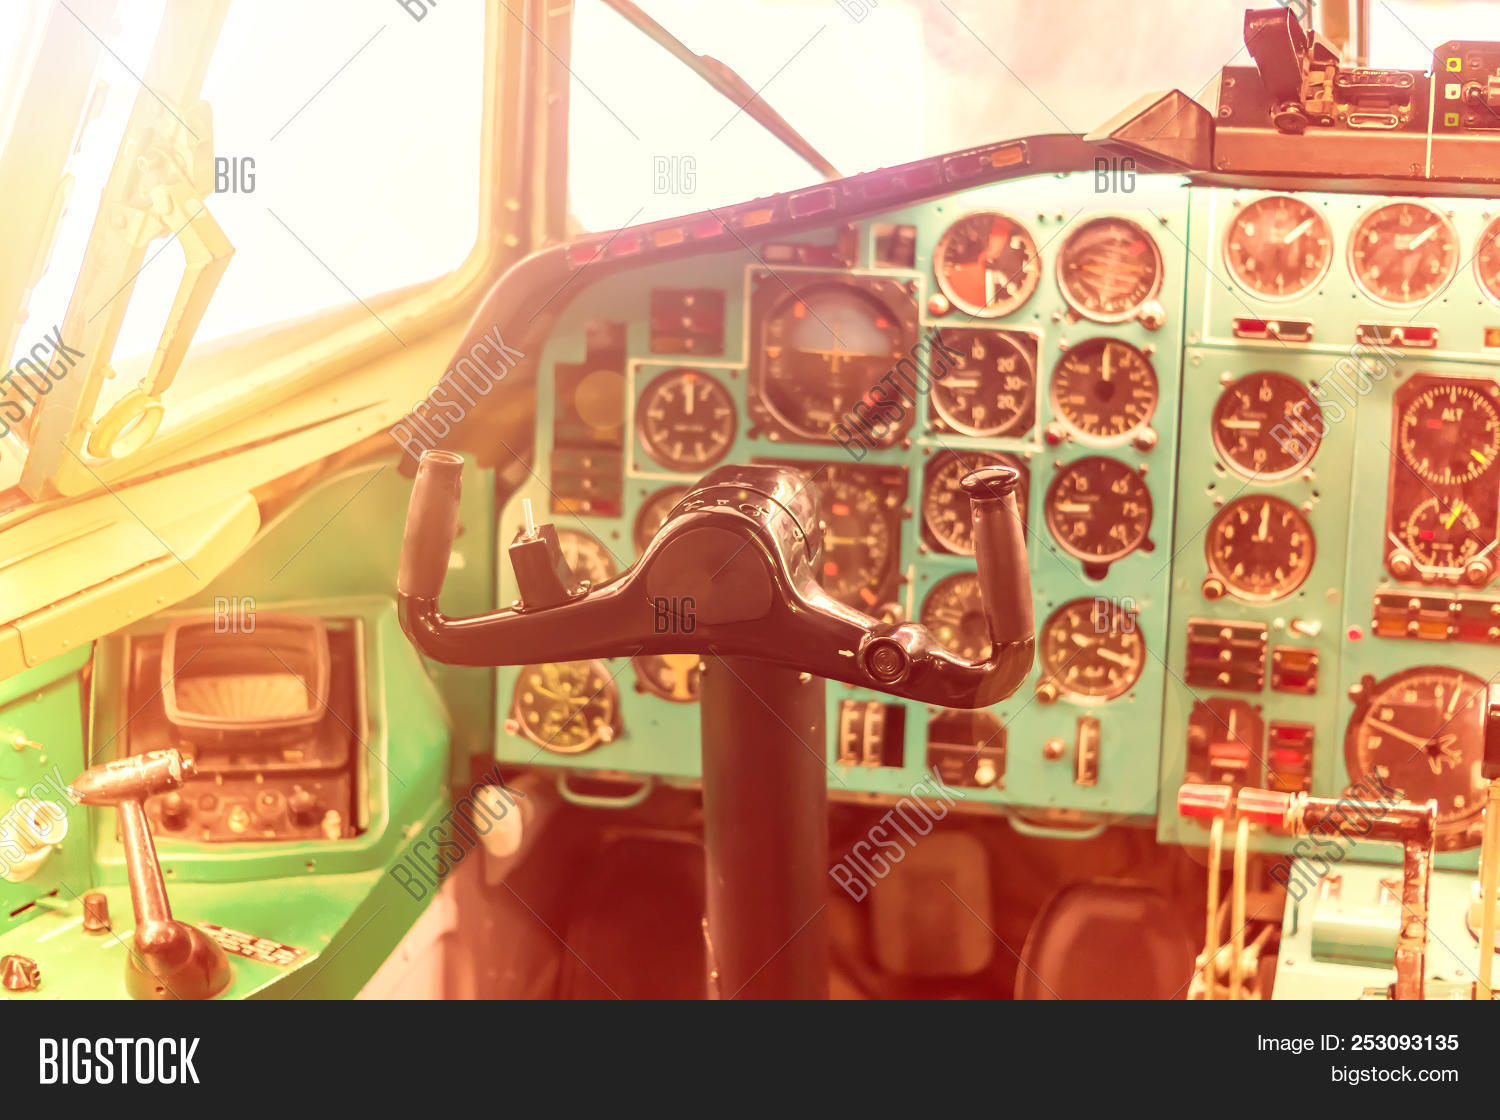 Pilot Seat Old Plane  Image & Photo (Free Trial) | Bigstock